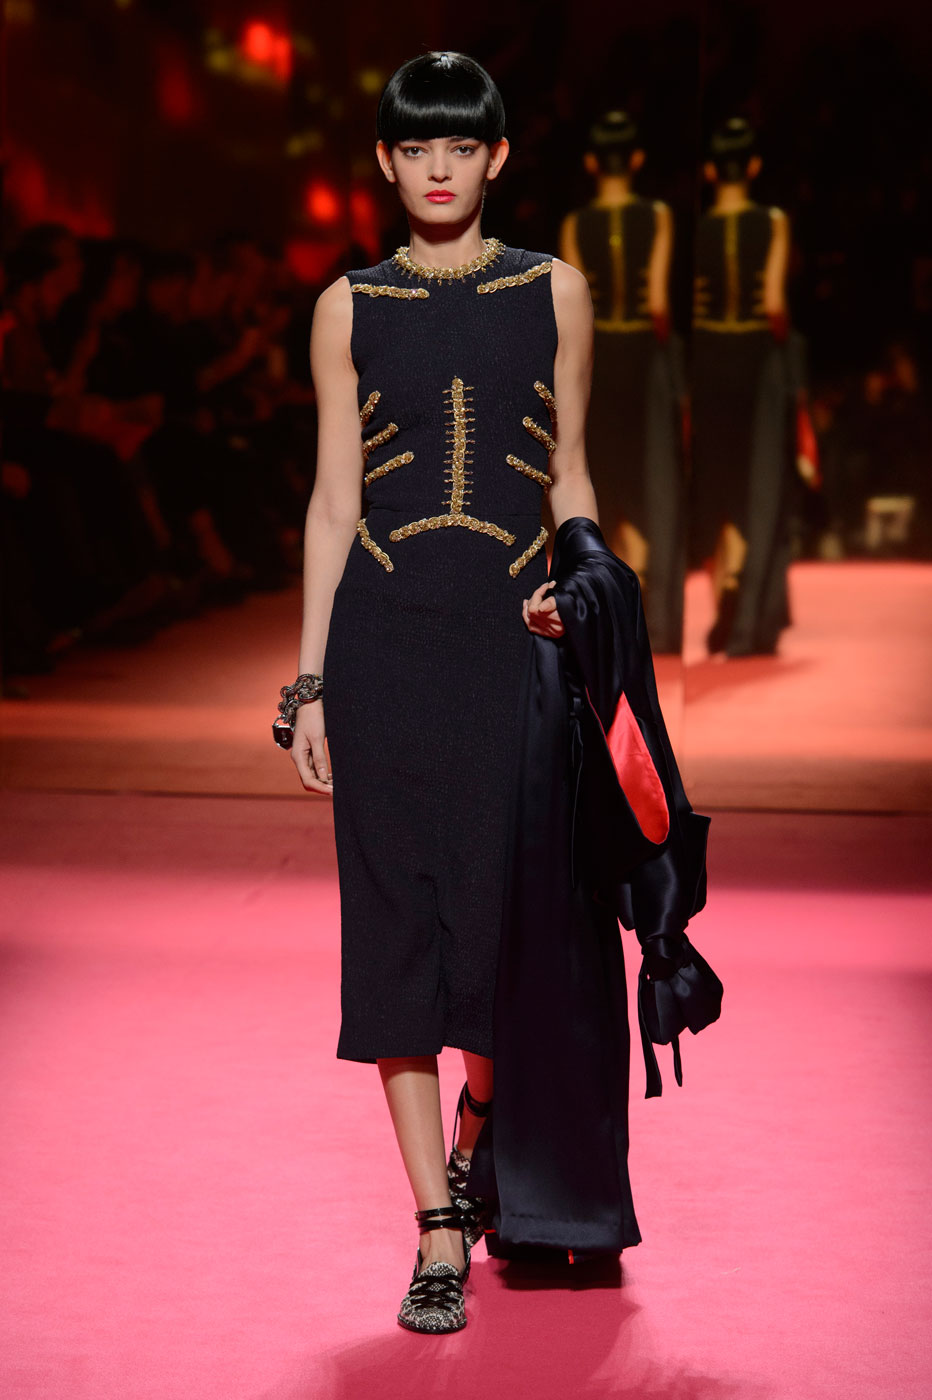 Schiaparelli-fashion-runway-show-haute-couture-paris-spring-summer-2015-the-impression-15